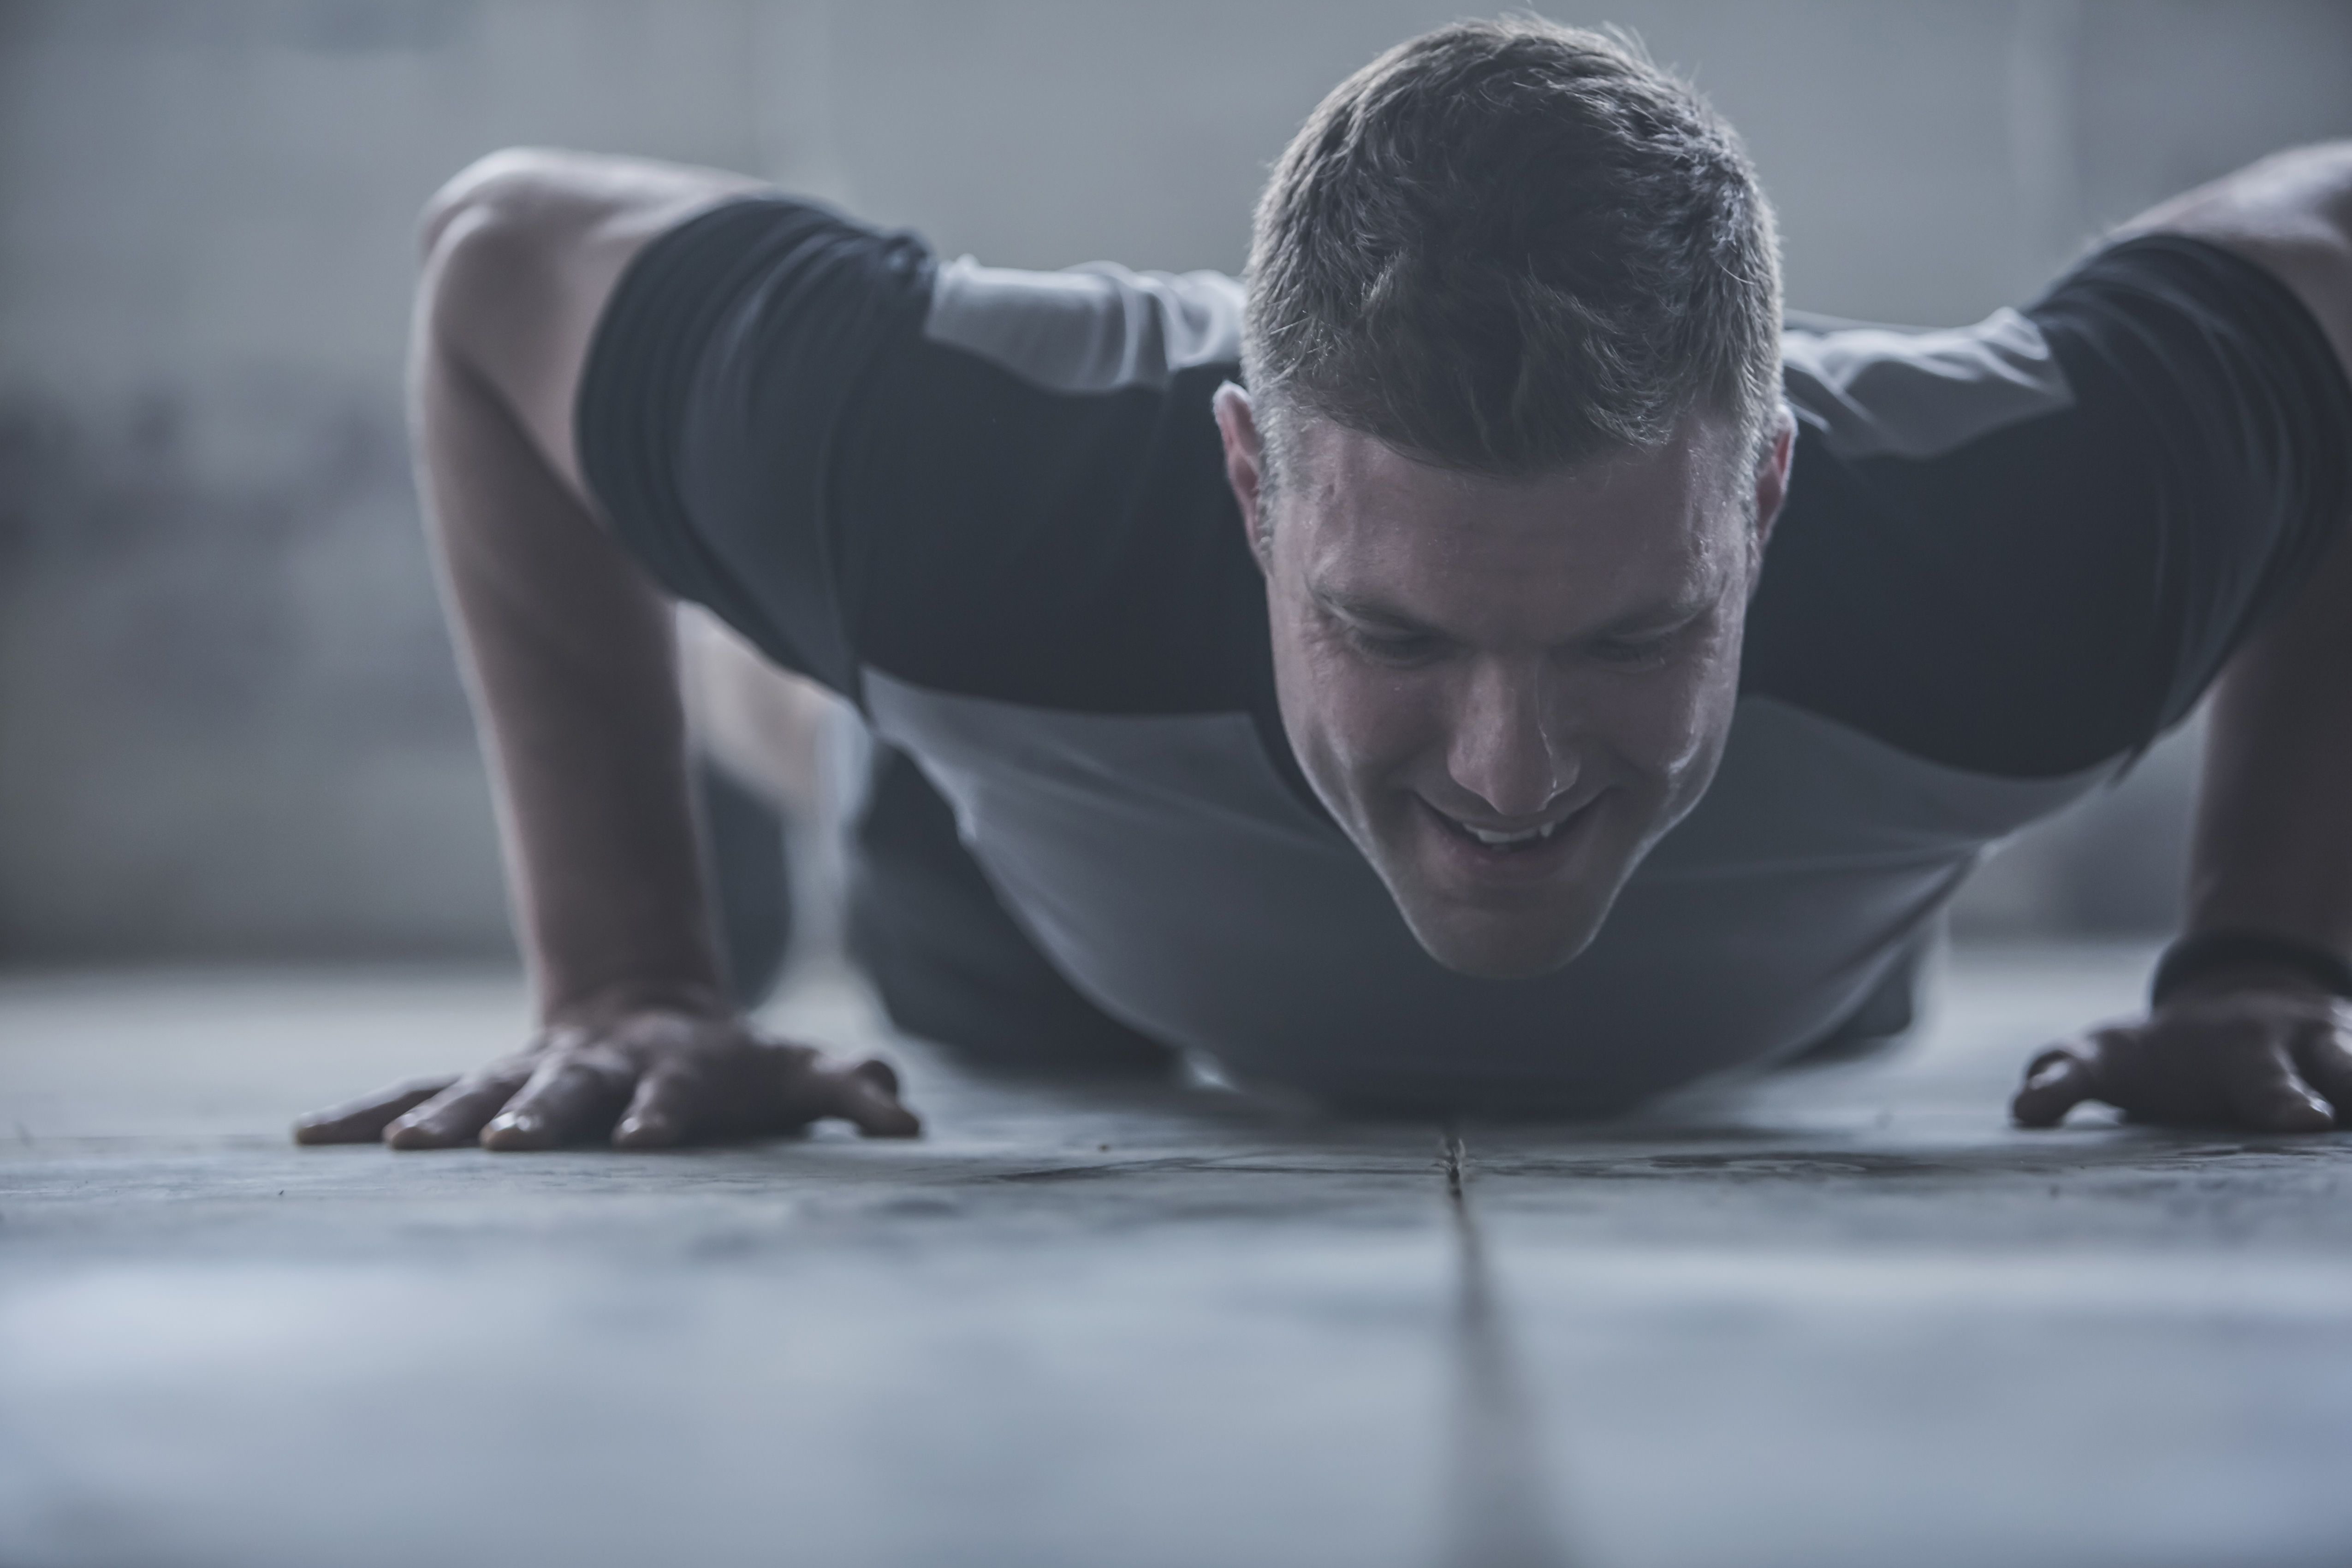 If You Want to Get Better at Pushups, Don't Get on Your Knees